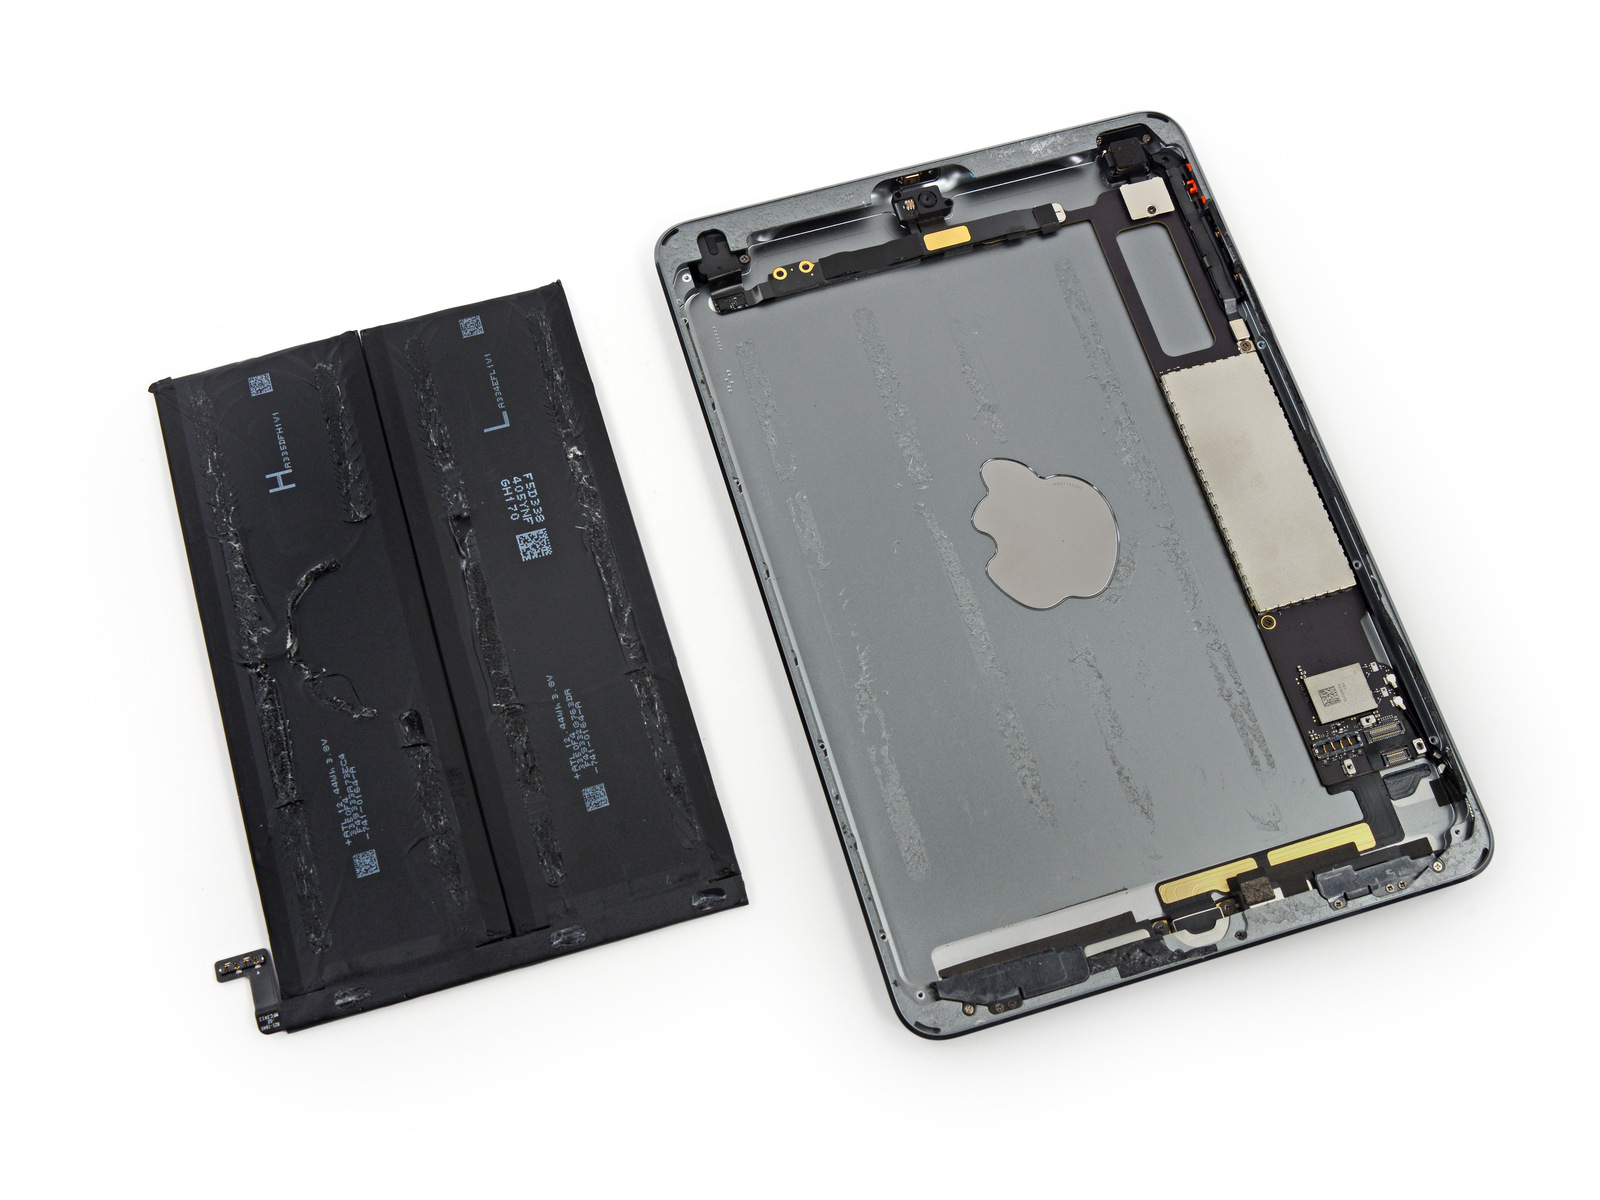 IPad mini 2 (Retina, iFixit teardown 003)